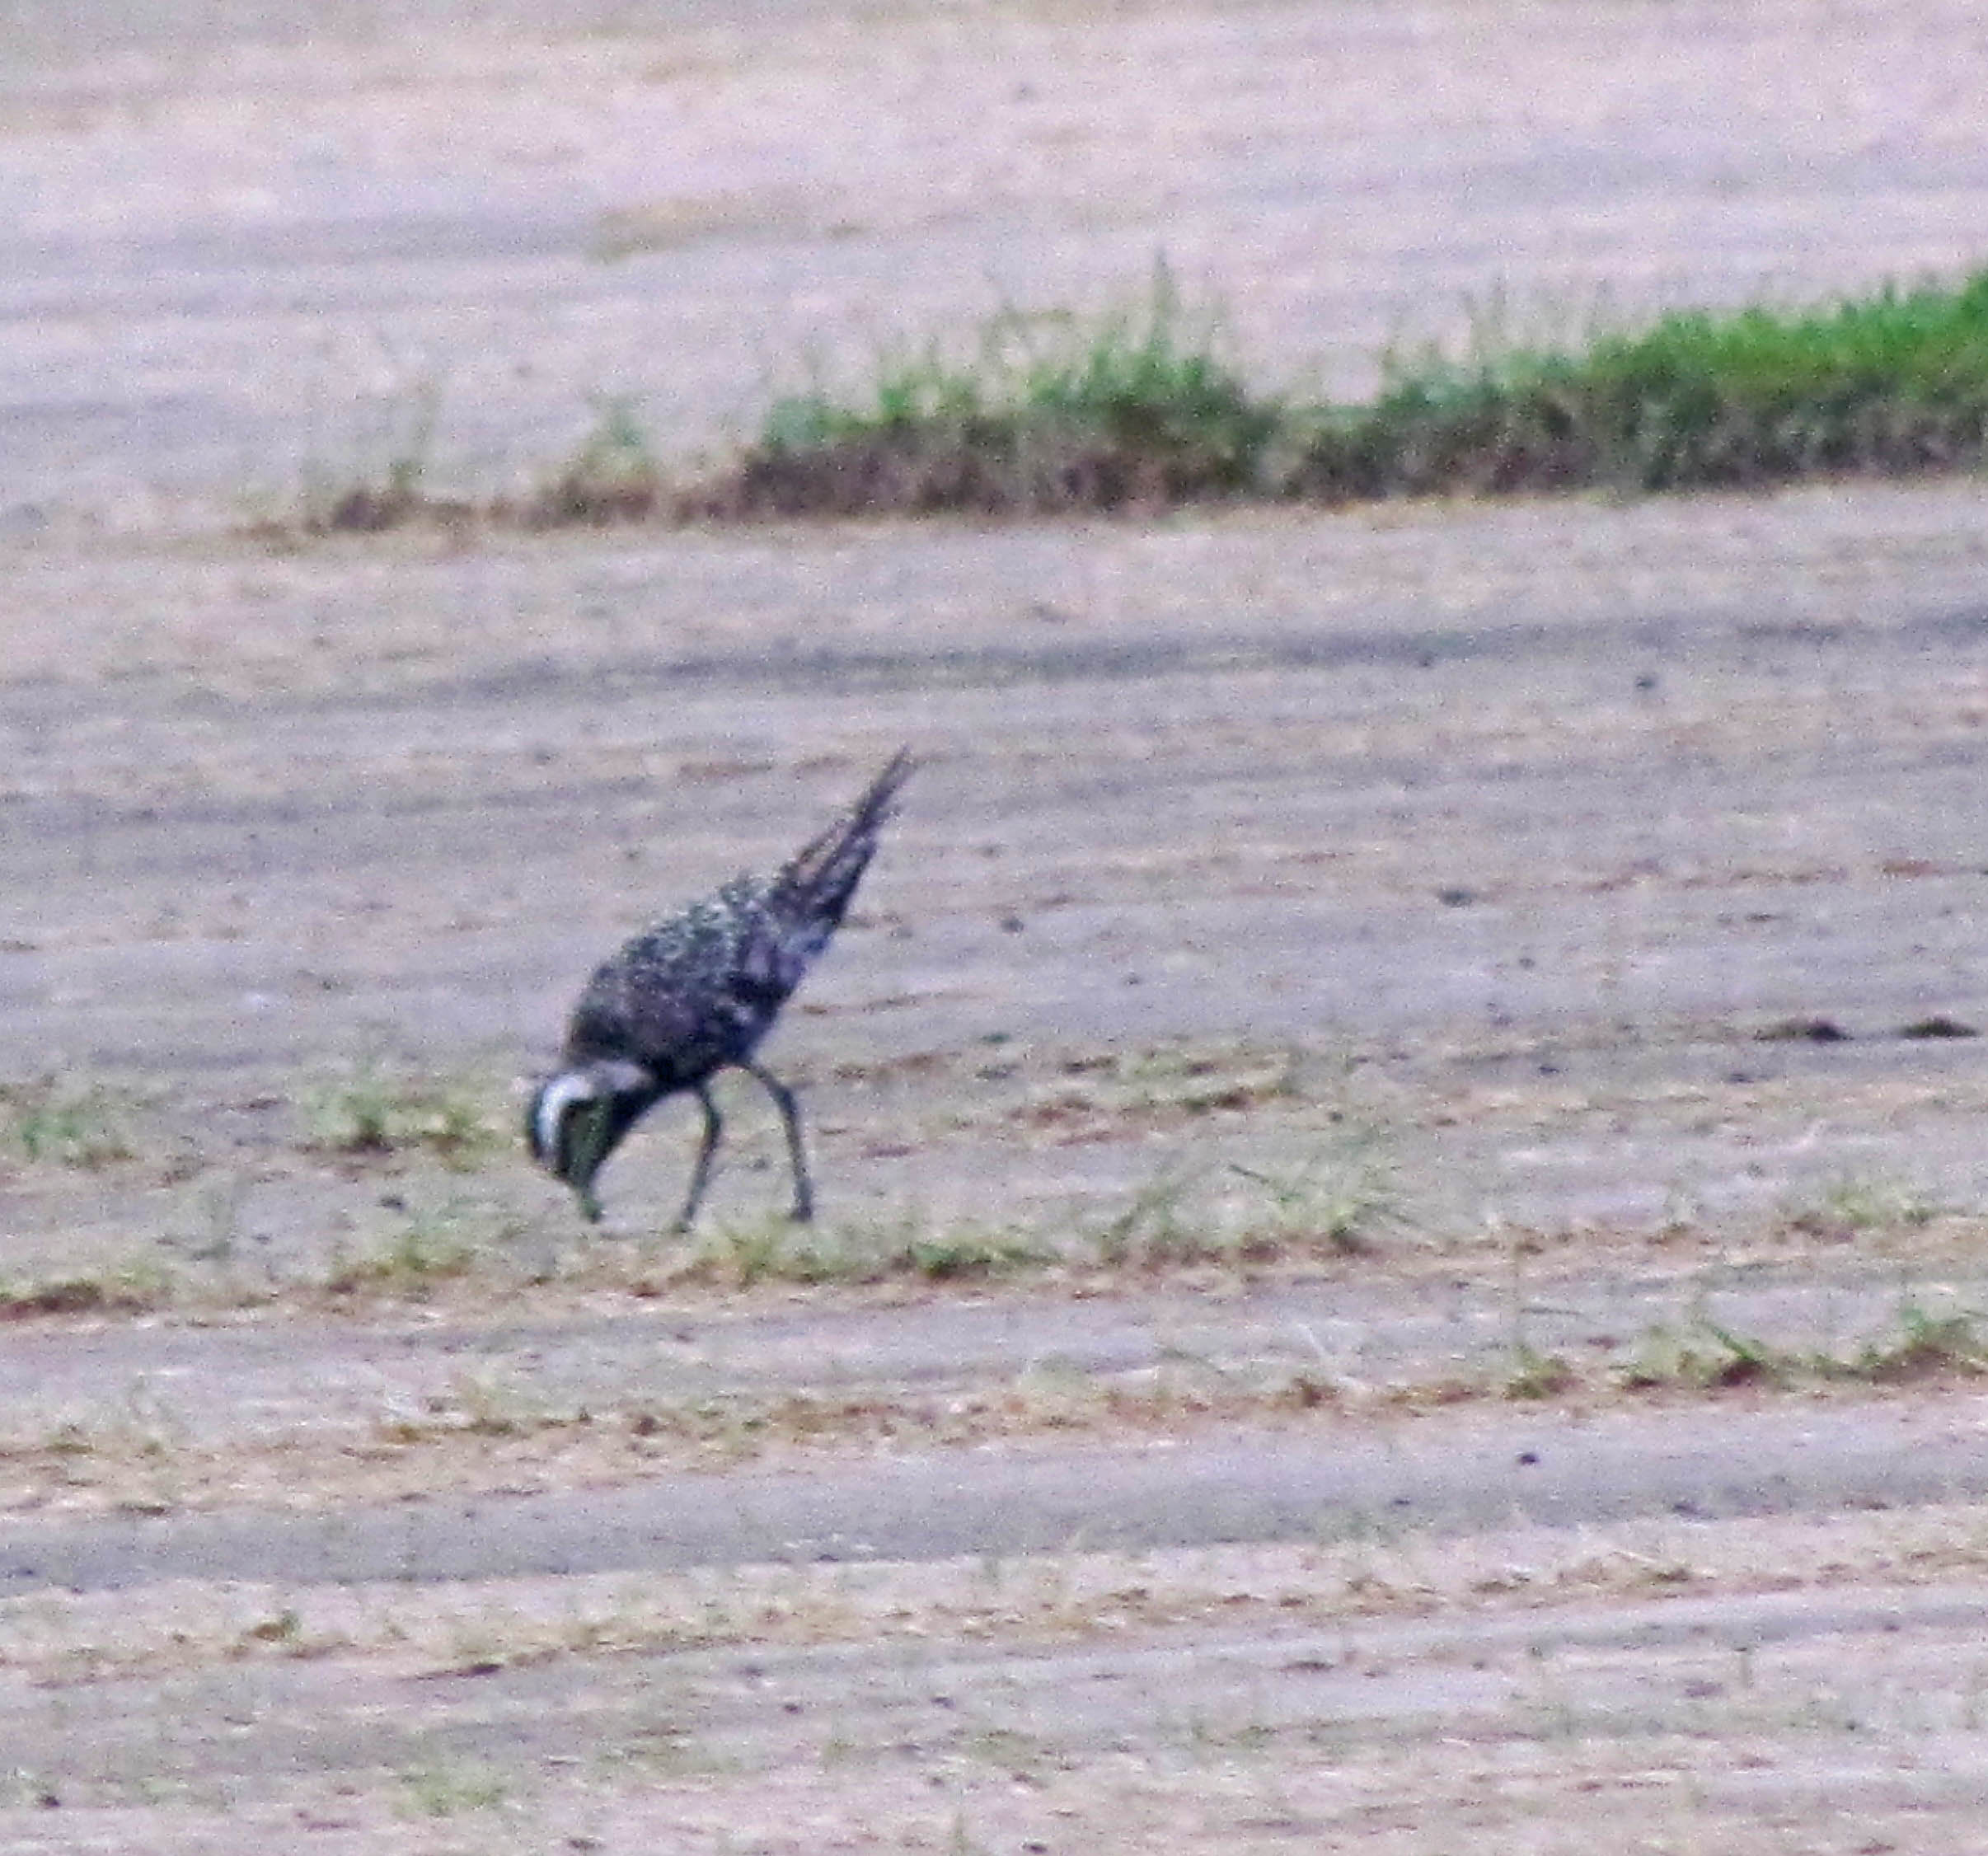 Another view of the American Golden Plover... courtesy of Kevin Rysiewski